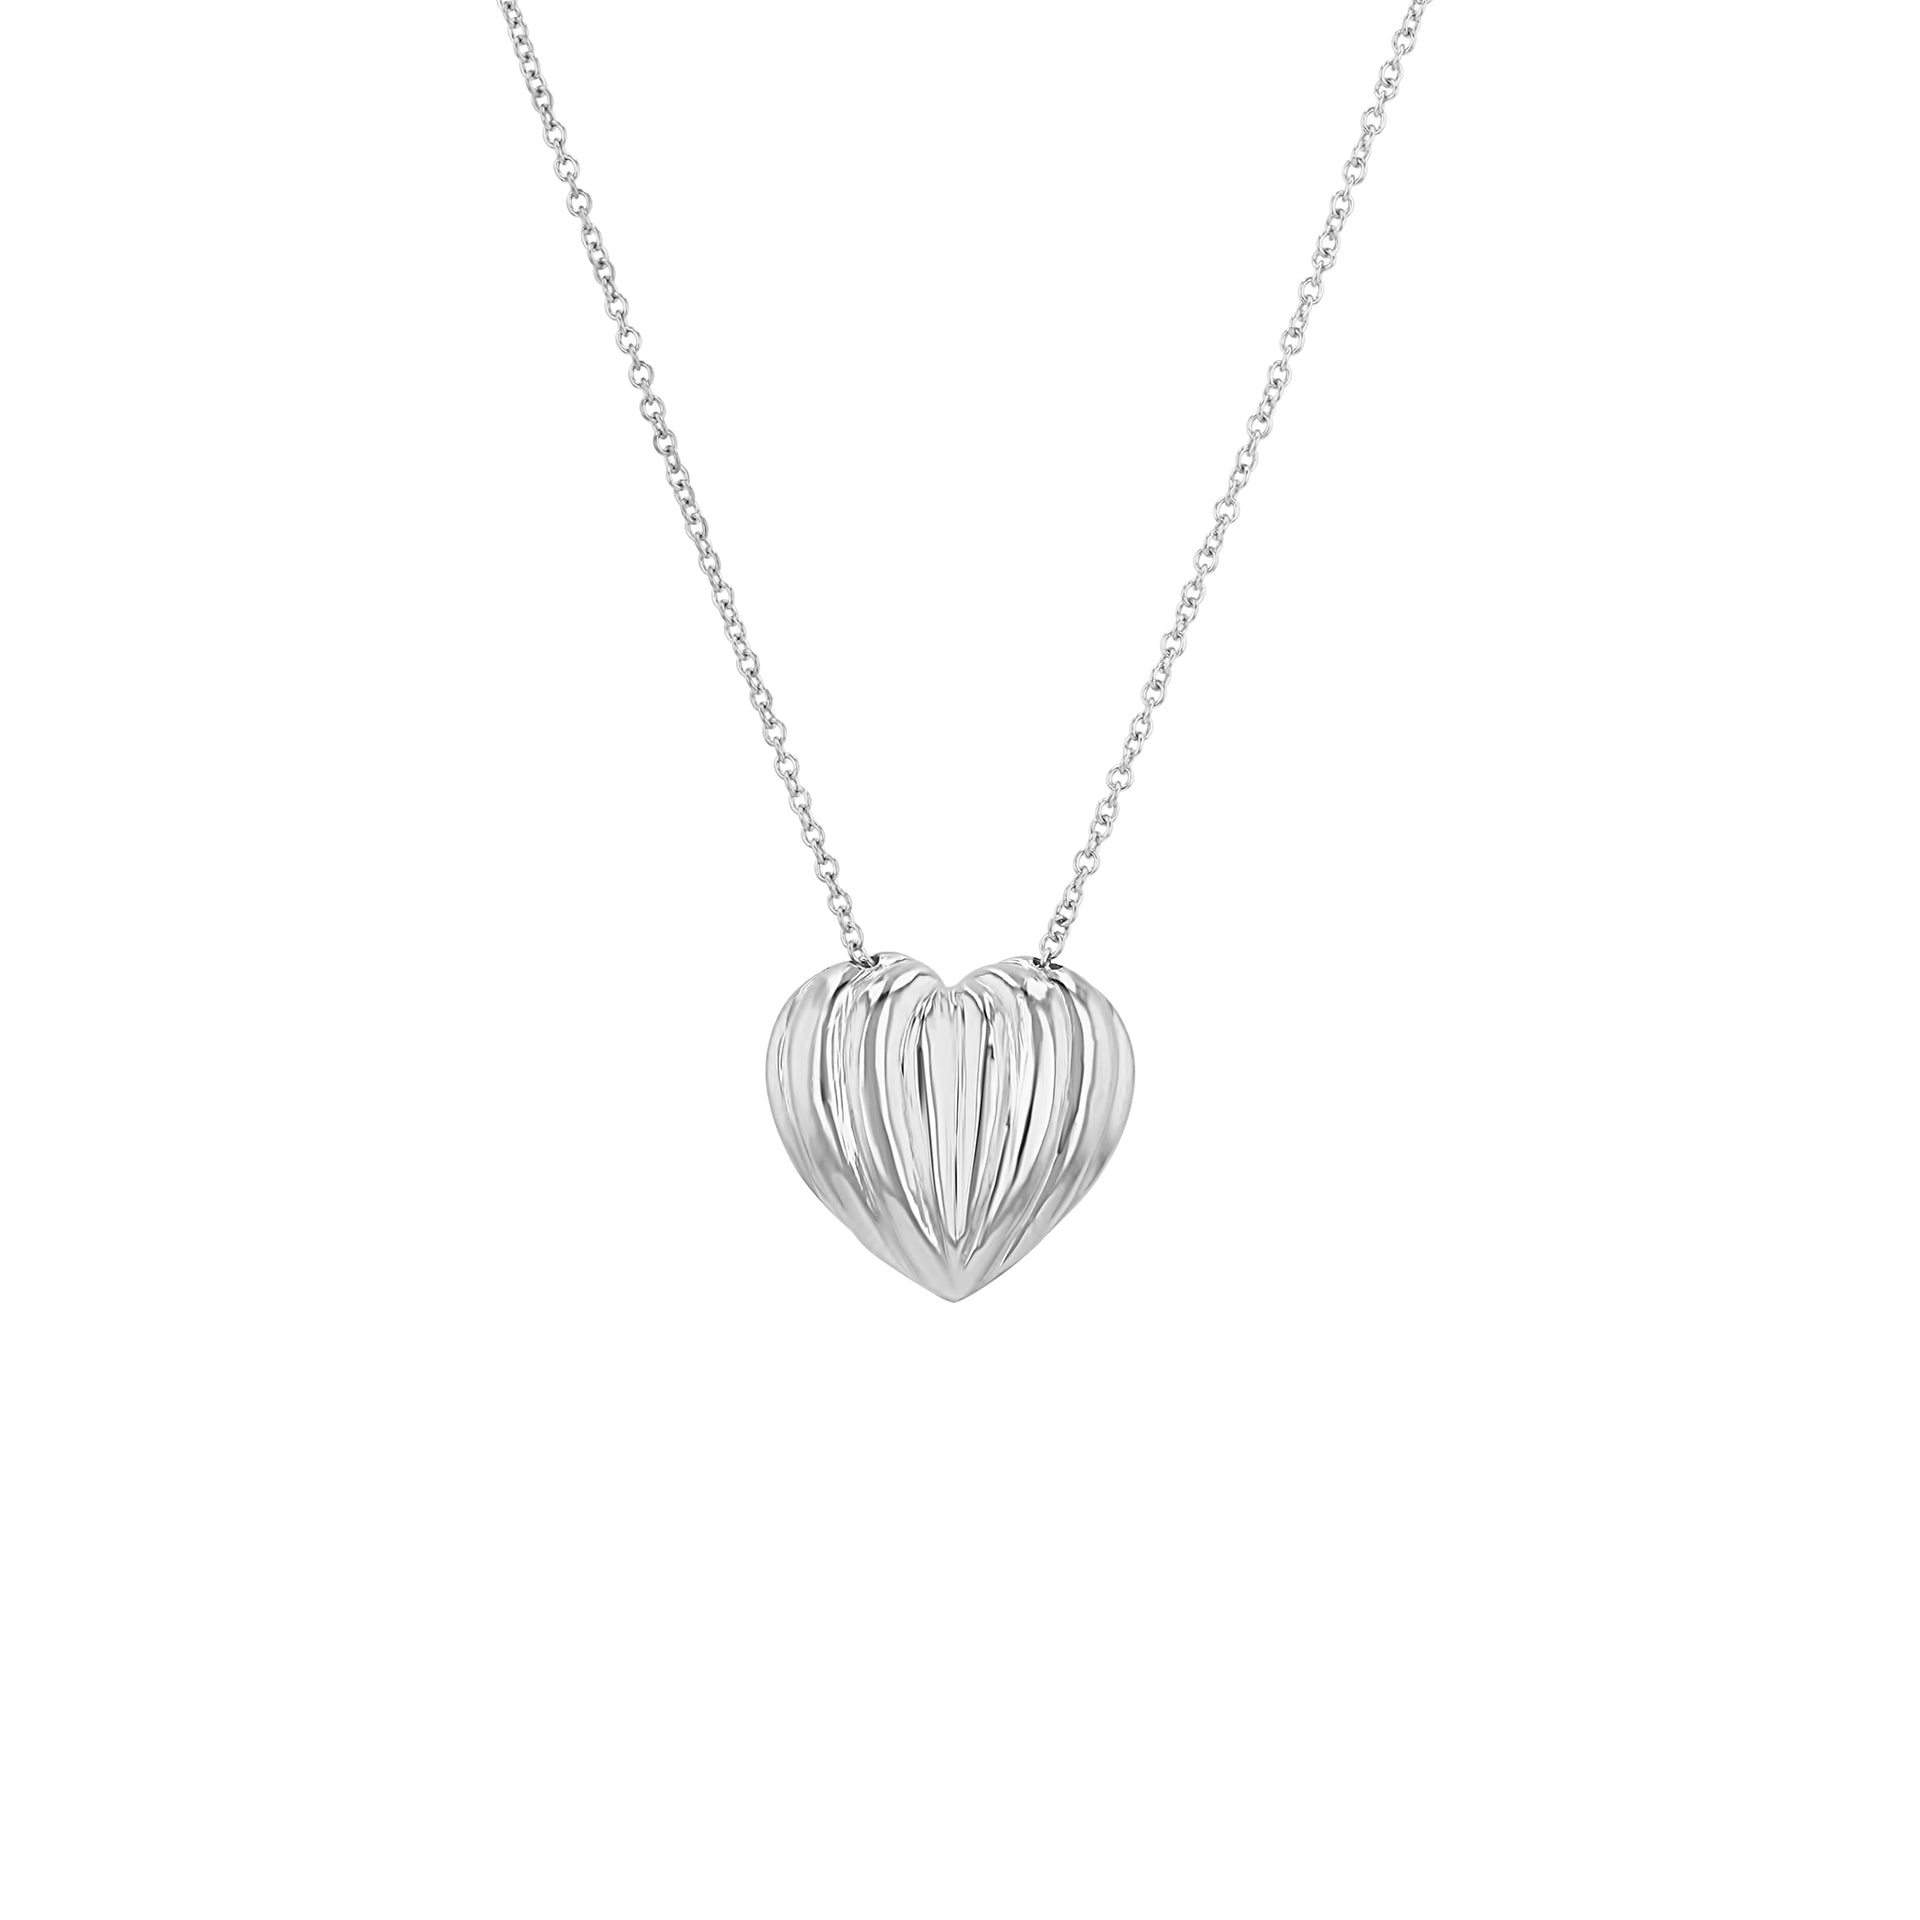 Cora Single-Sided Pendant on Chain